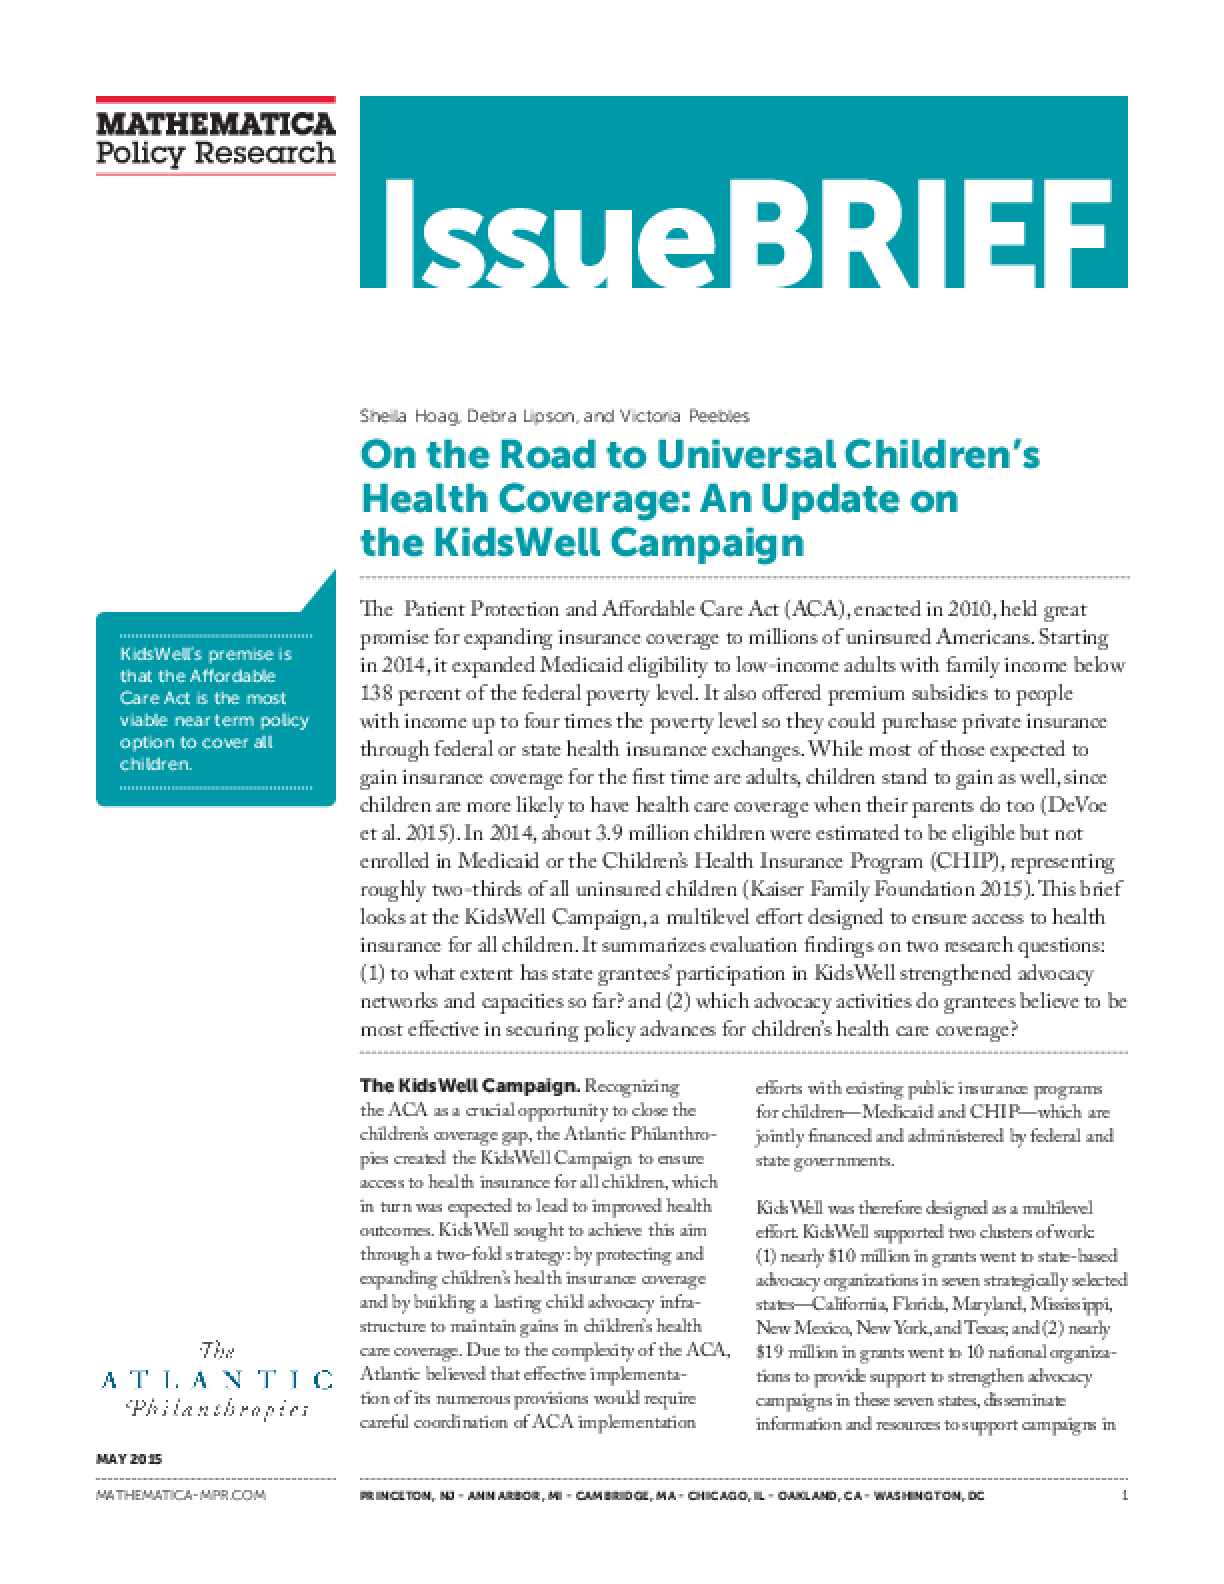 On the Road to Universal Children's Health Coverage: An Update on the KidsWell Campaign